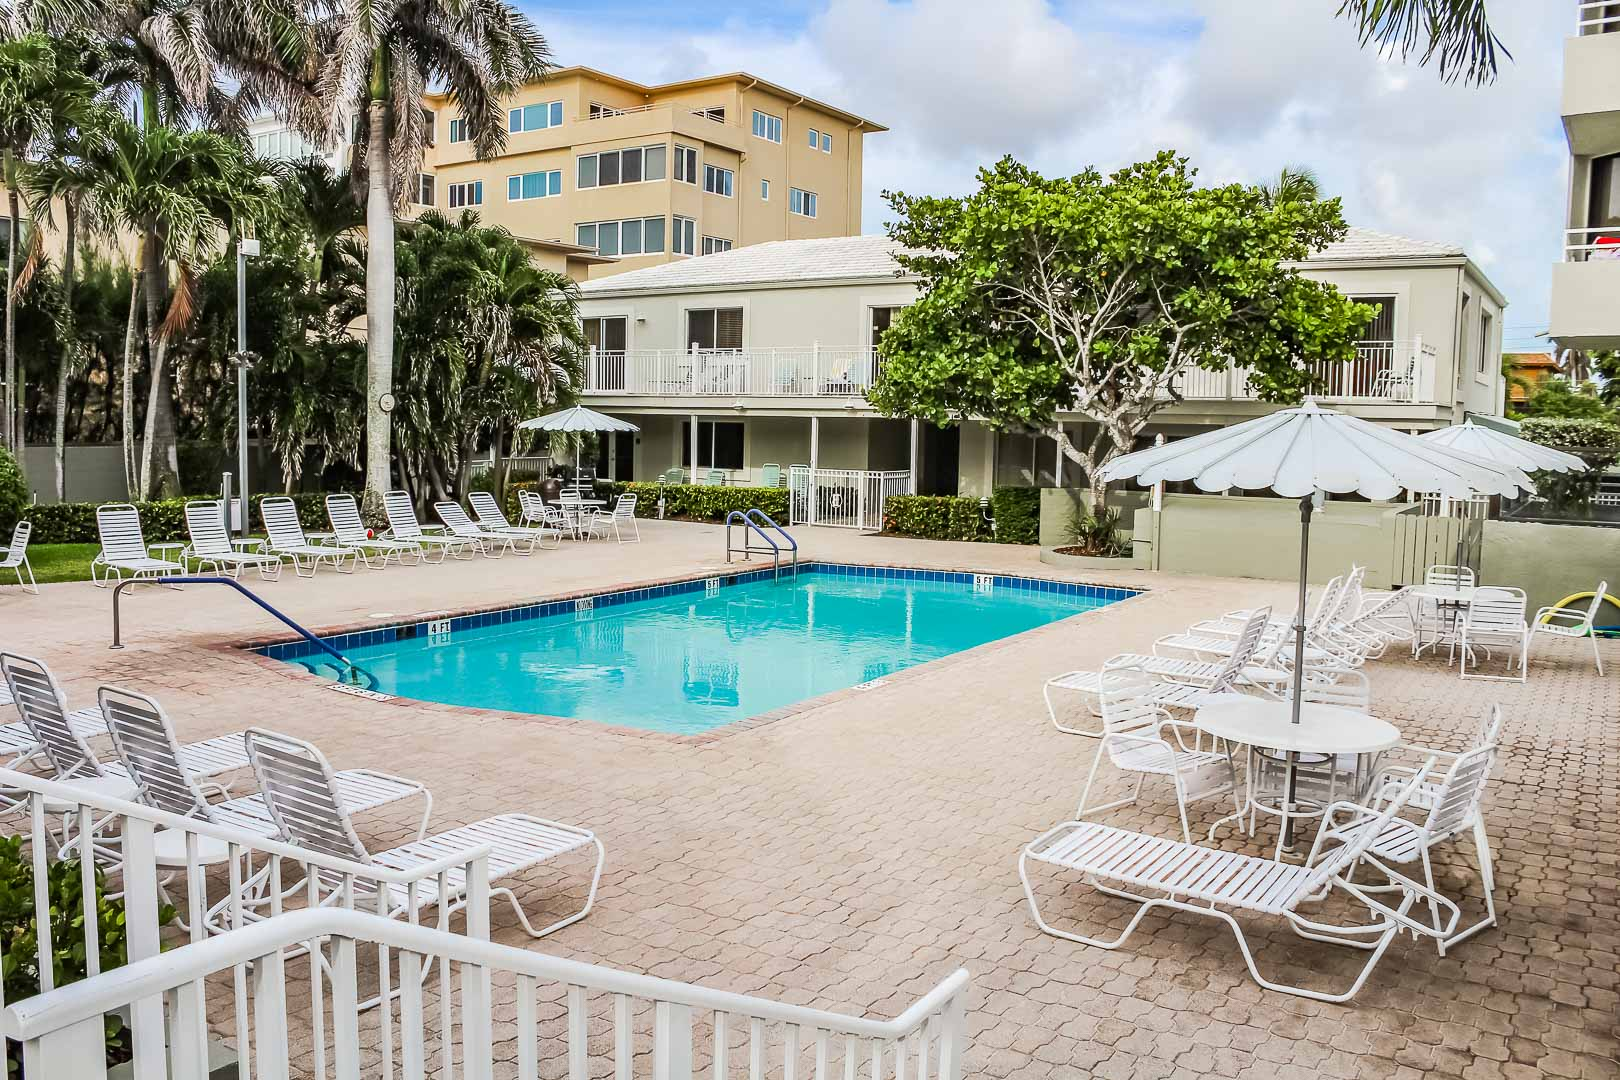 A quaint pool area at VRI's Berkshire by the Sea in Florida.